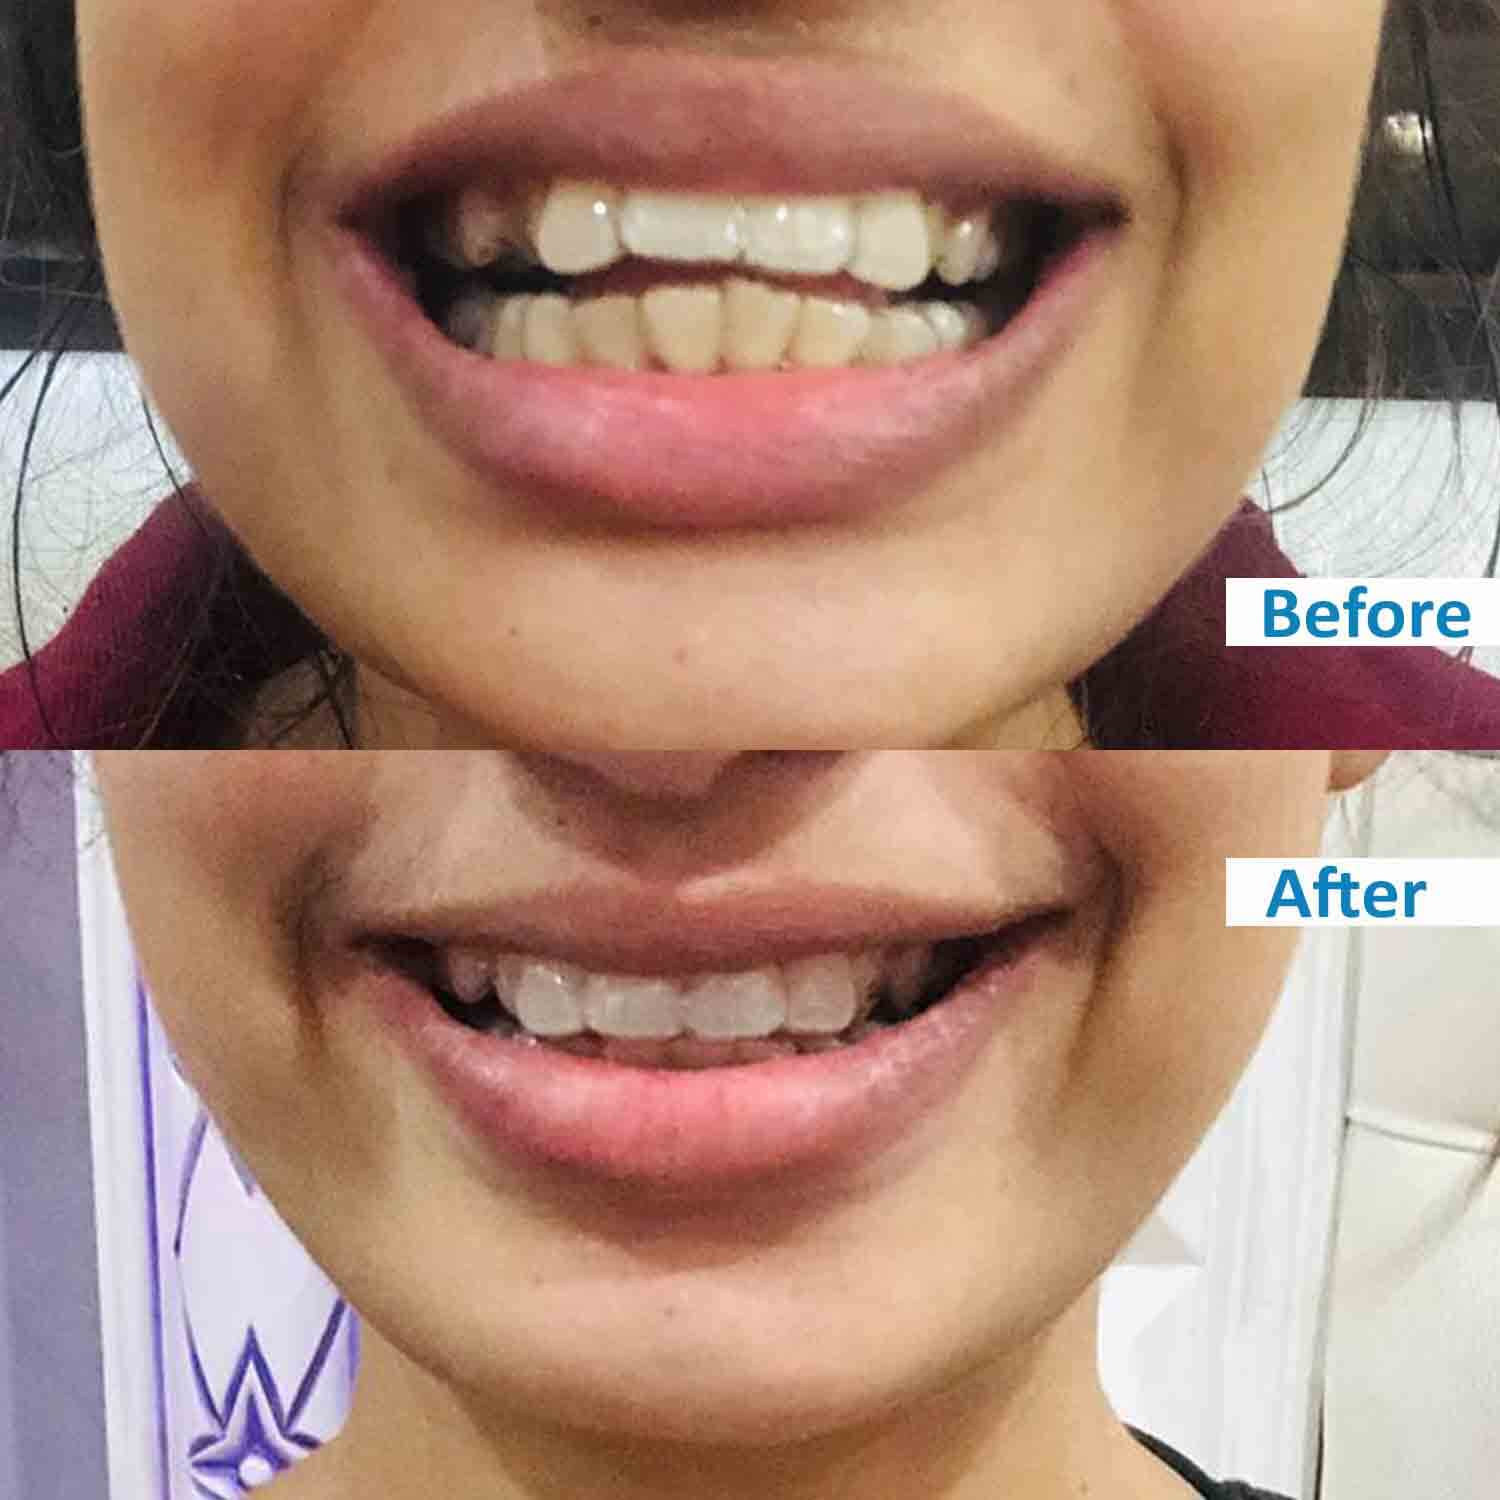 ensmile patient's before and after 1